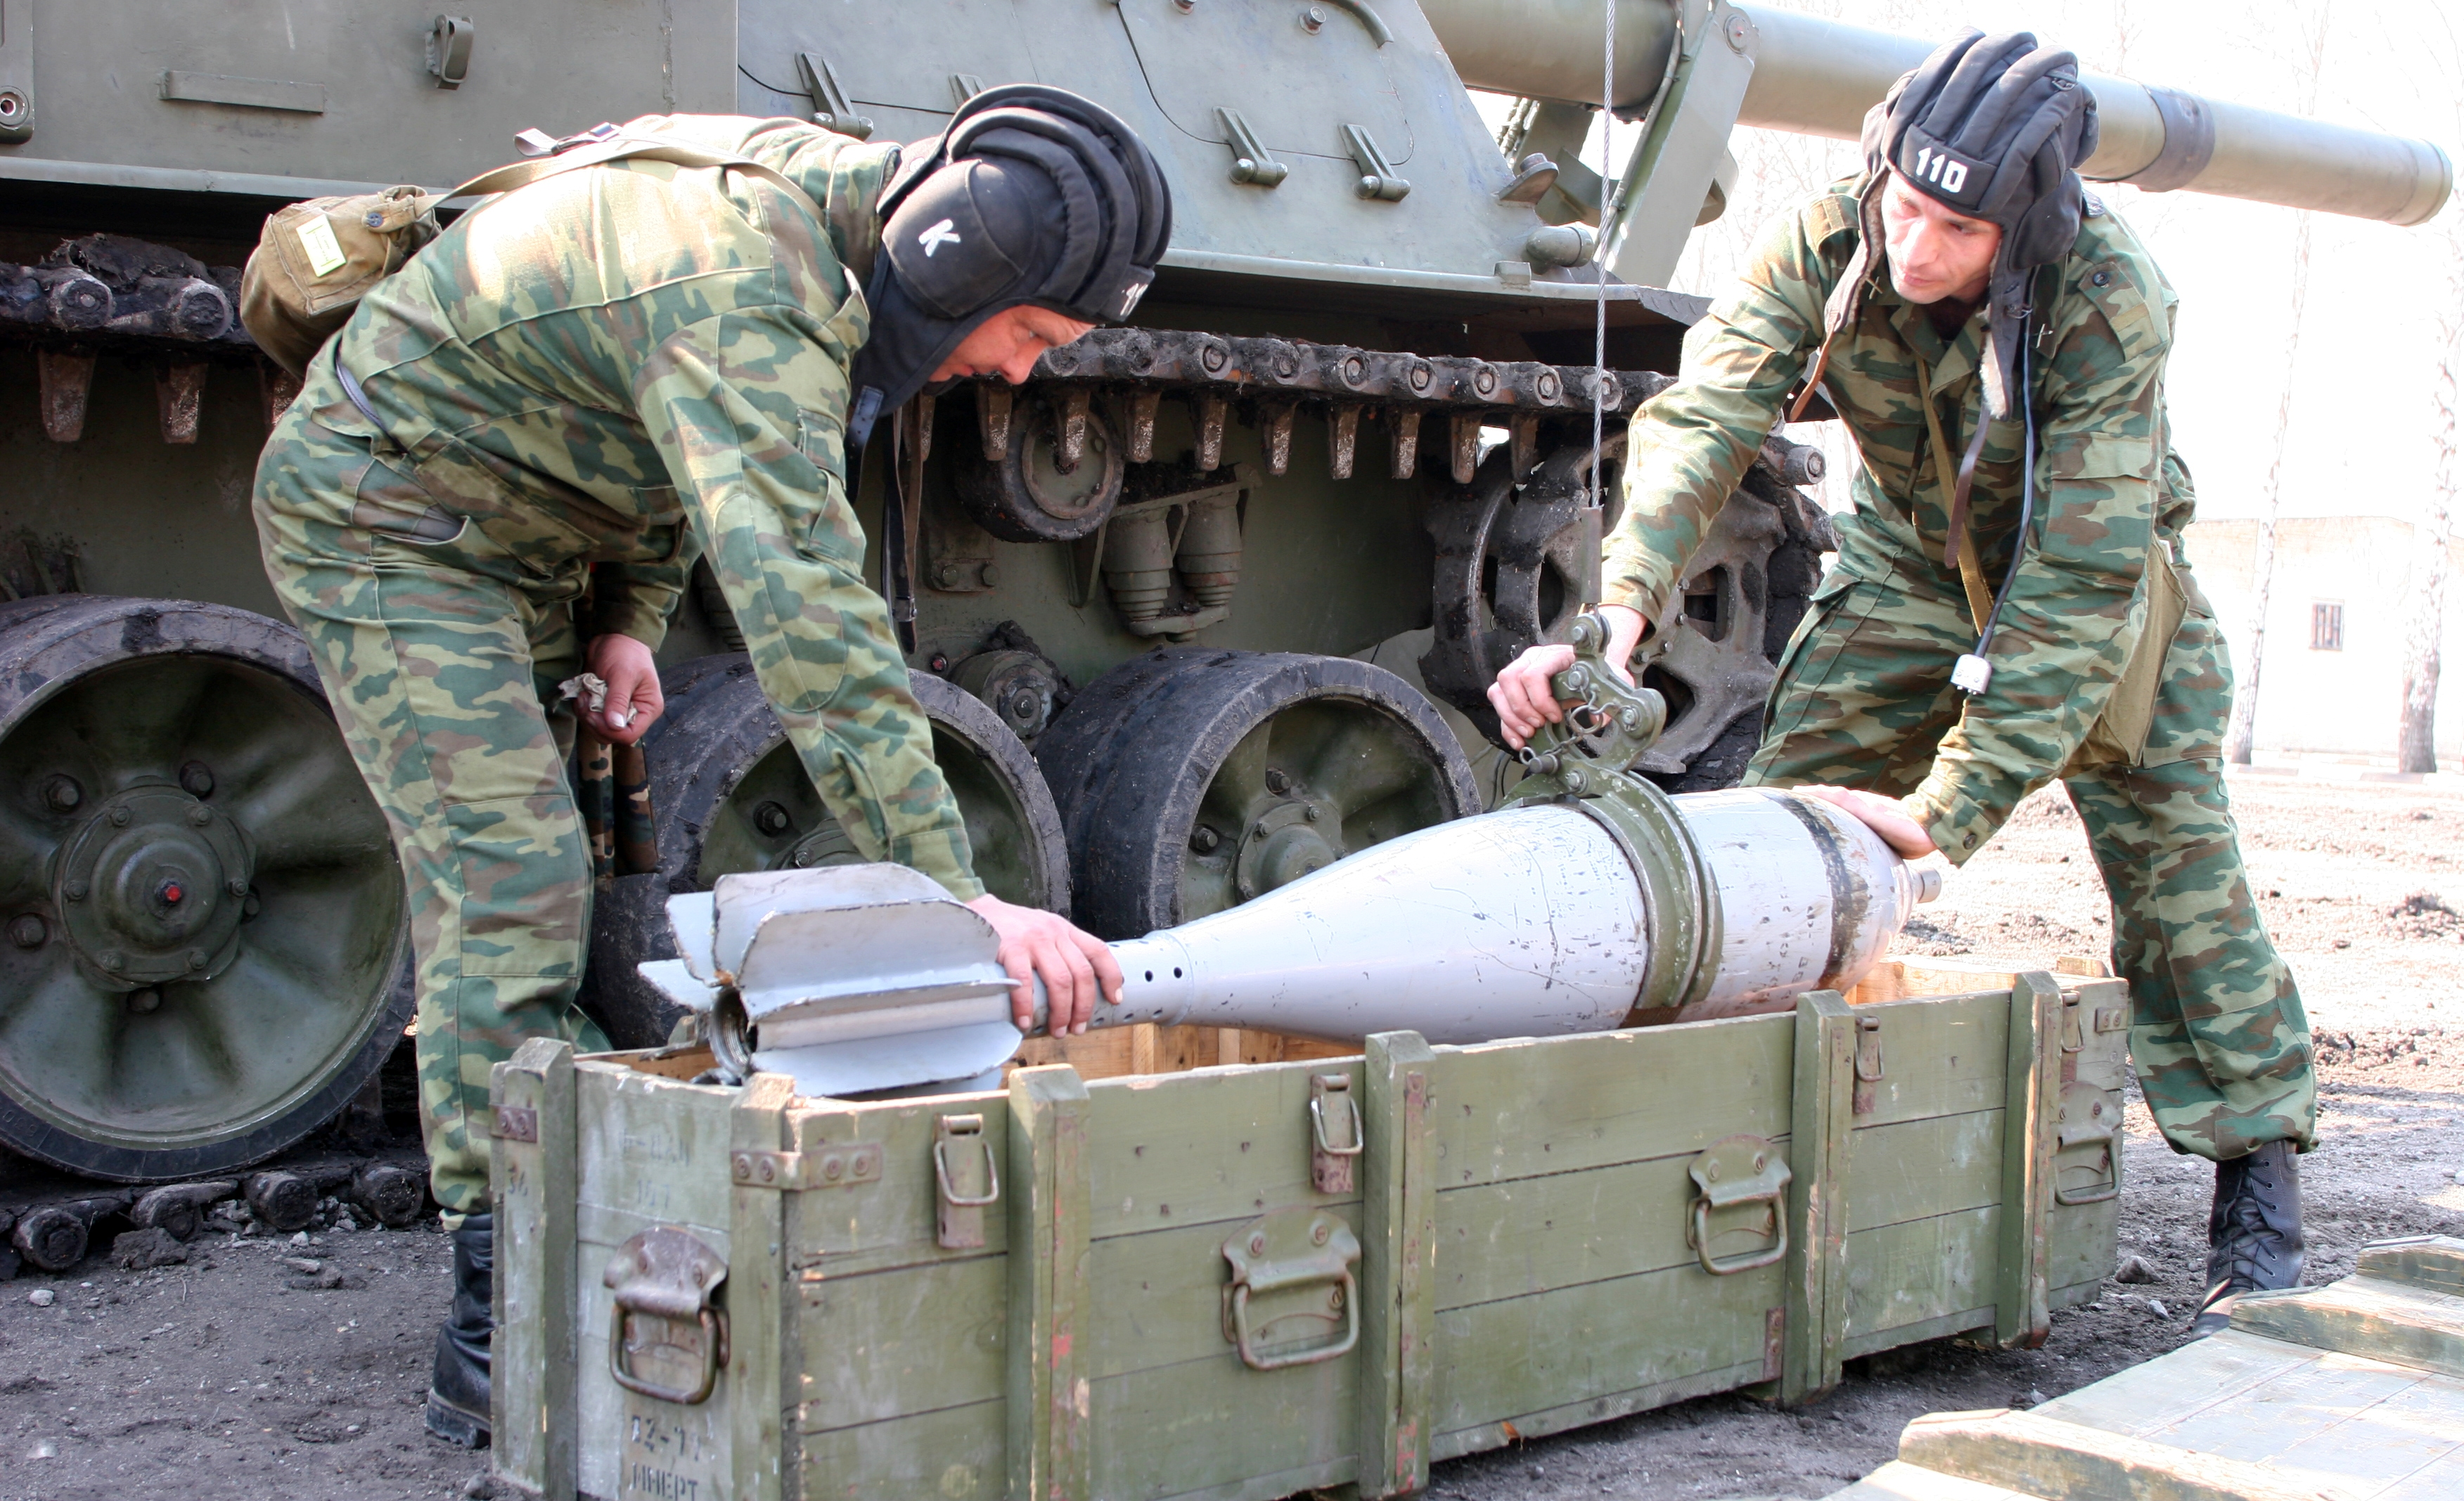 Russia to Deploy 2 More Artillery Divisions Armed with Soviet Weapon Systems near Ukrainian Border